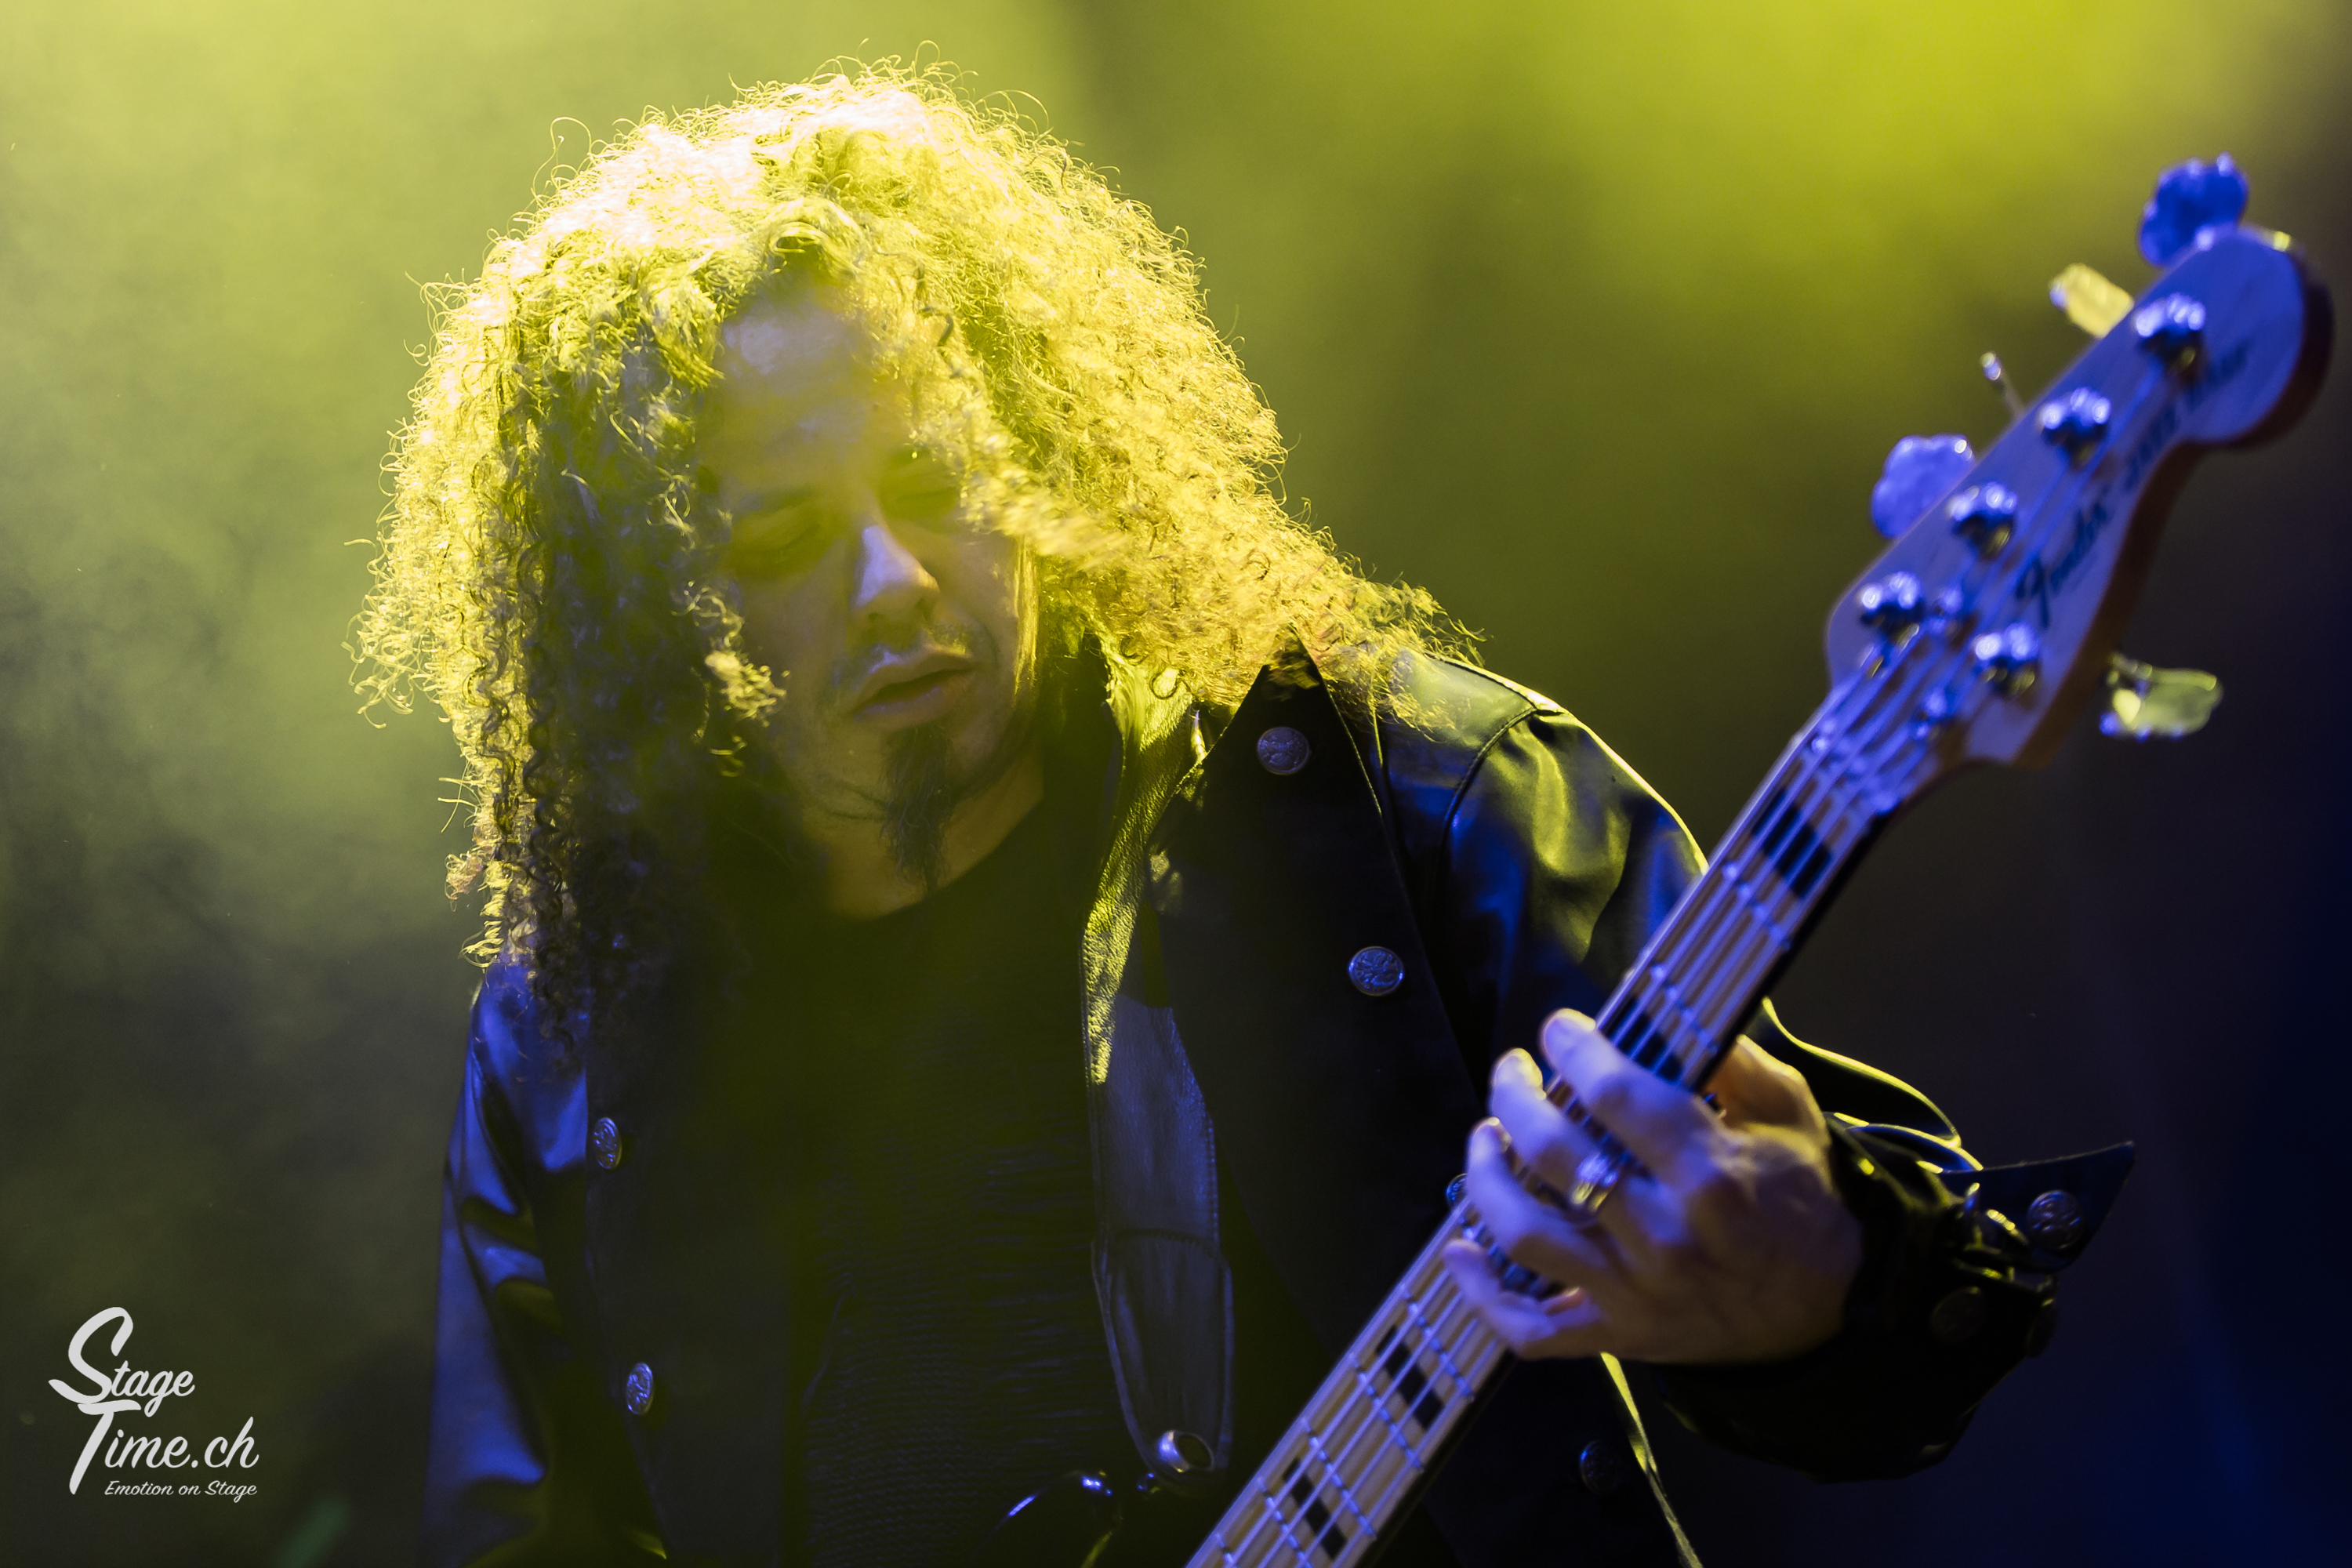 Moonspell_(Foto-Christoph_Gurtner-_Stagetime.ch)-3